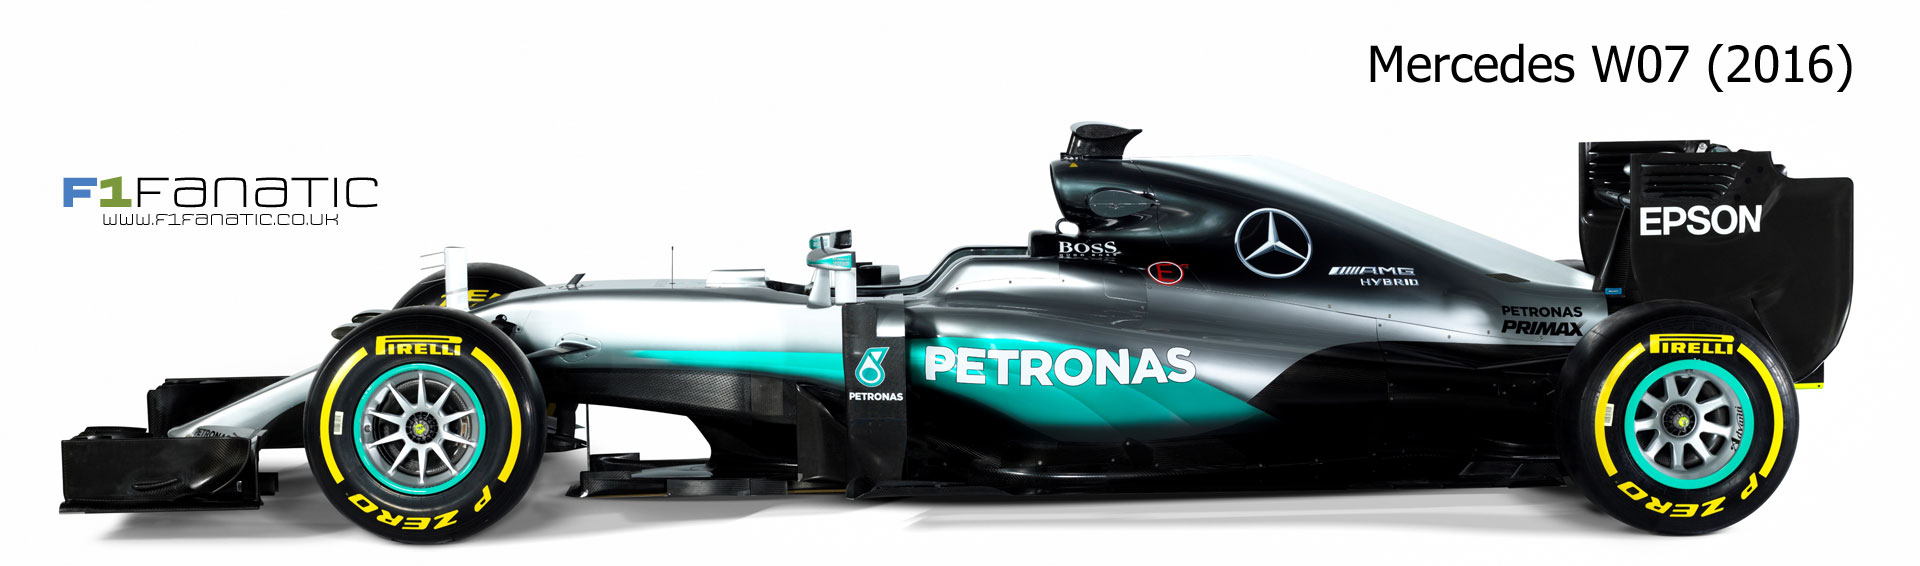 Chassis design of f1 car - Side View